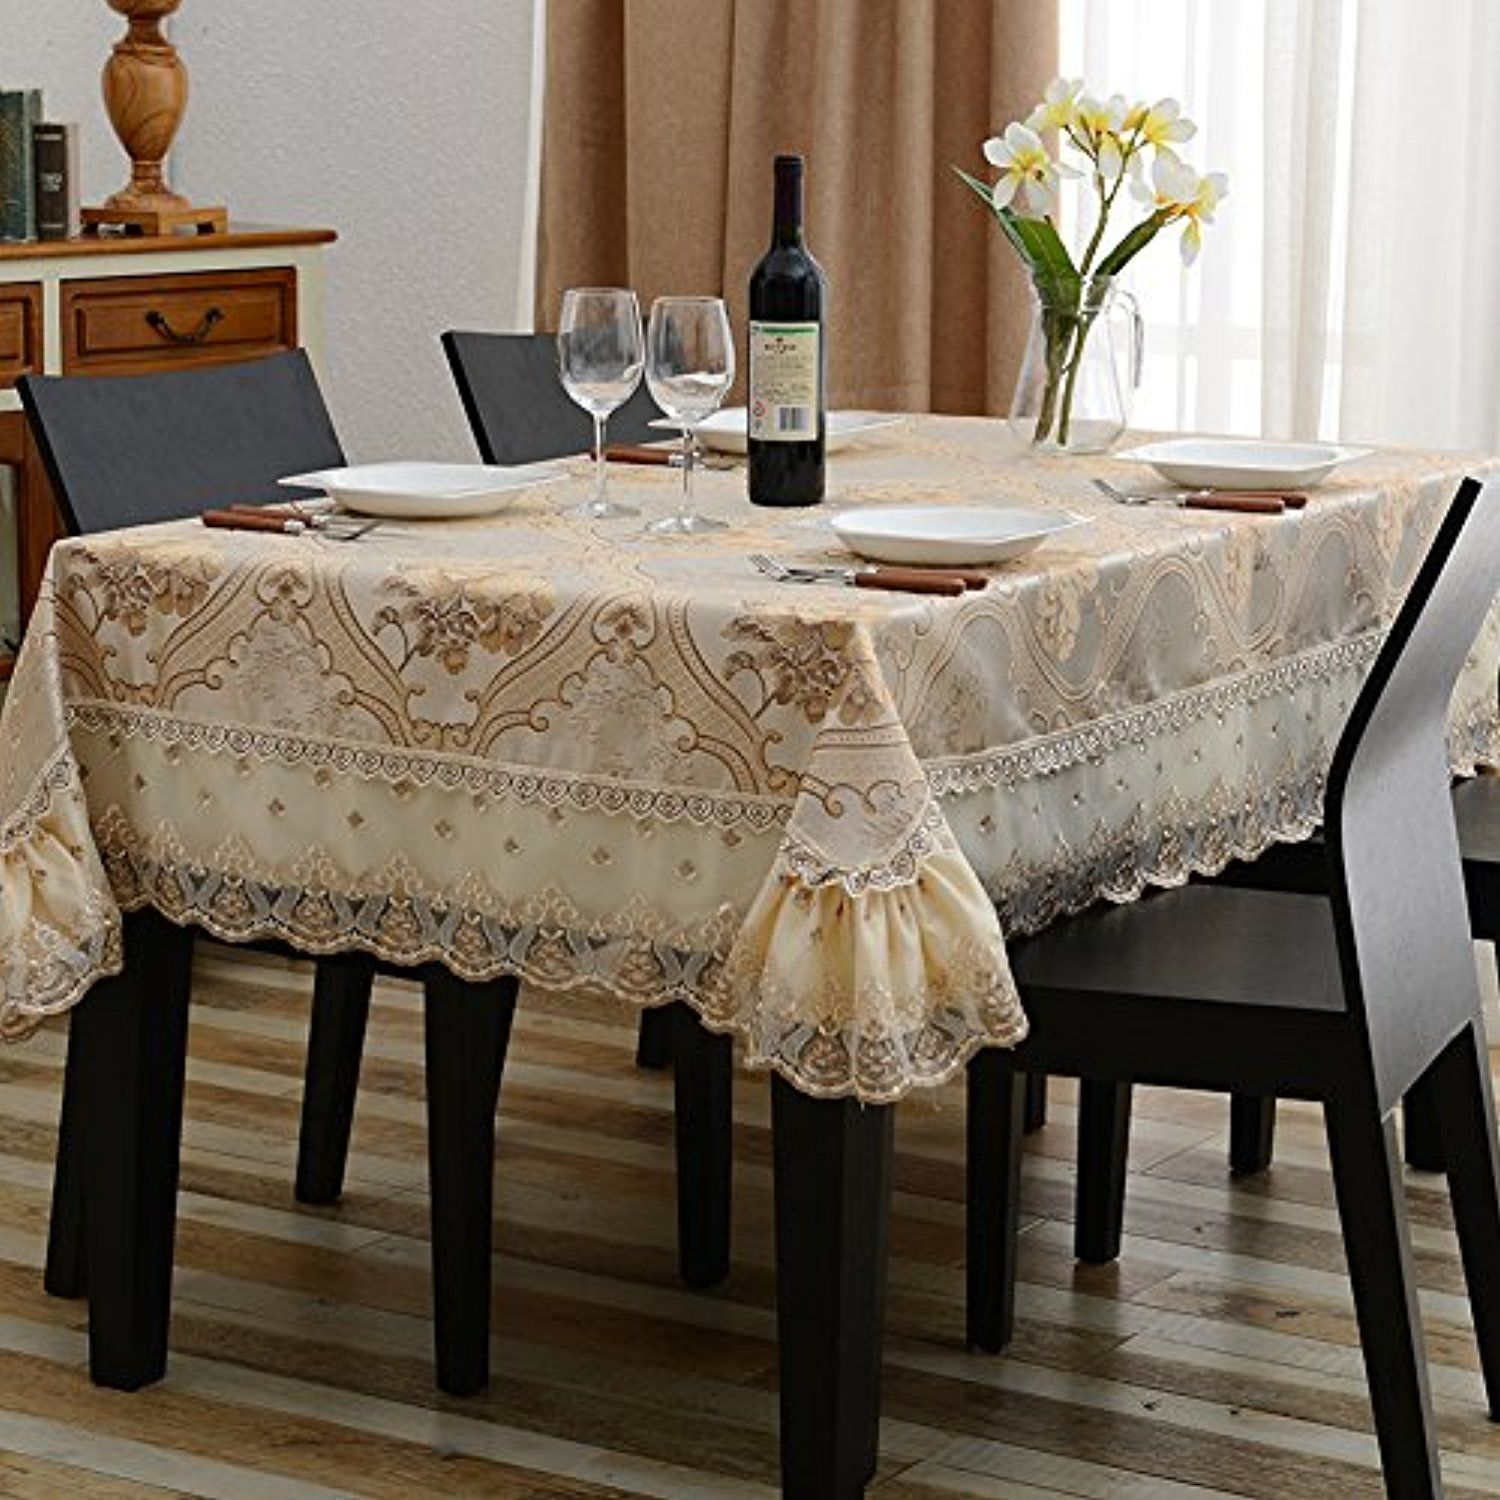 Wfljl Simple Style Decoration Tablecloth Cotton Coffee Rectangle Cover Cloth 140220cm Click On The Image Dining Table Cloth Tablecloths For Sale Table Cloth #tablecloth #for #living #room